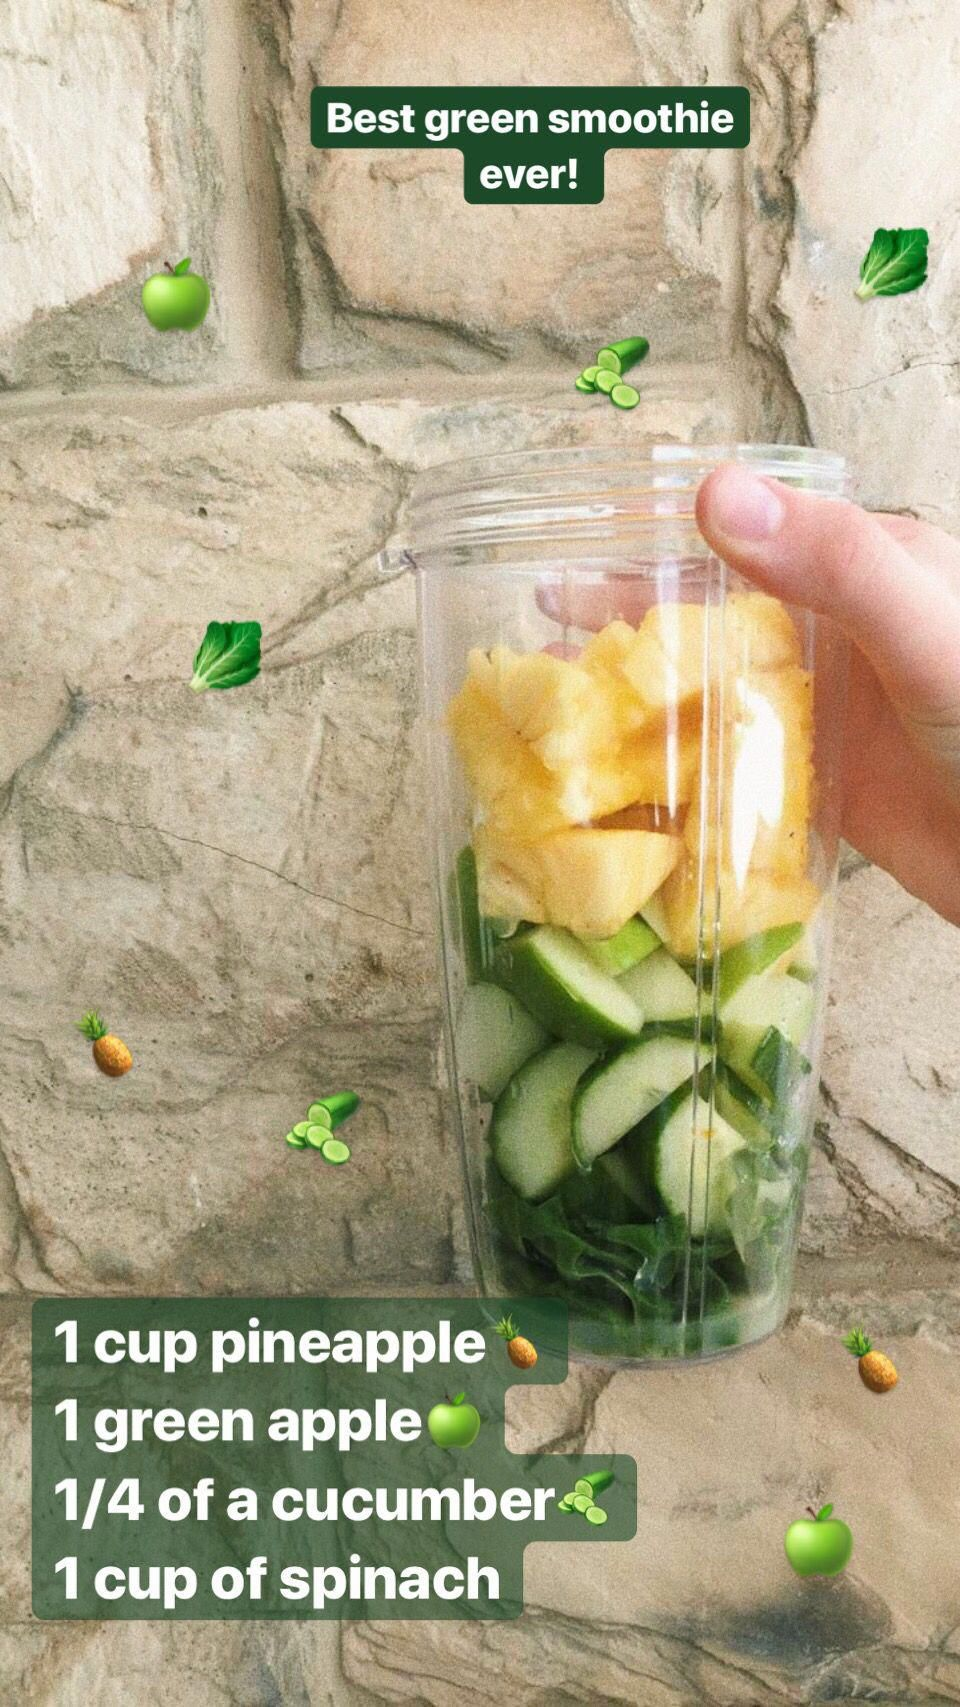 Best Smoothies For Weight Loss.Great Advice For Green Smoothies Your Favorite Fo…